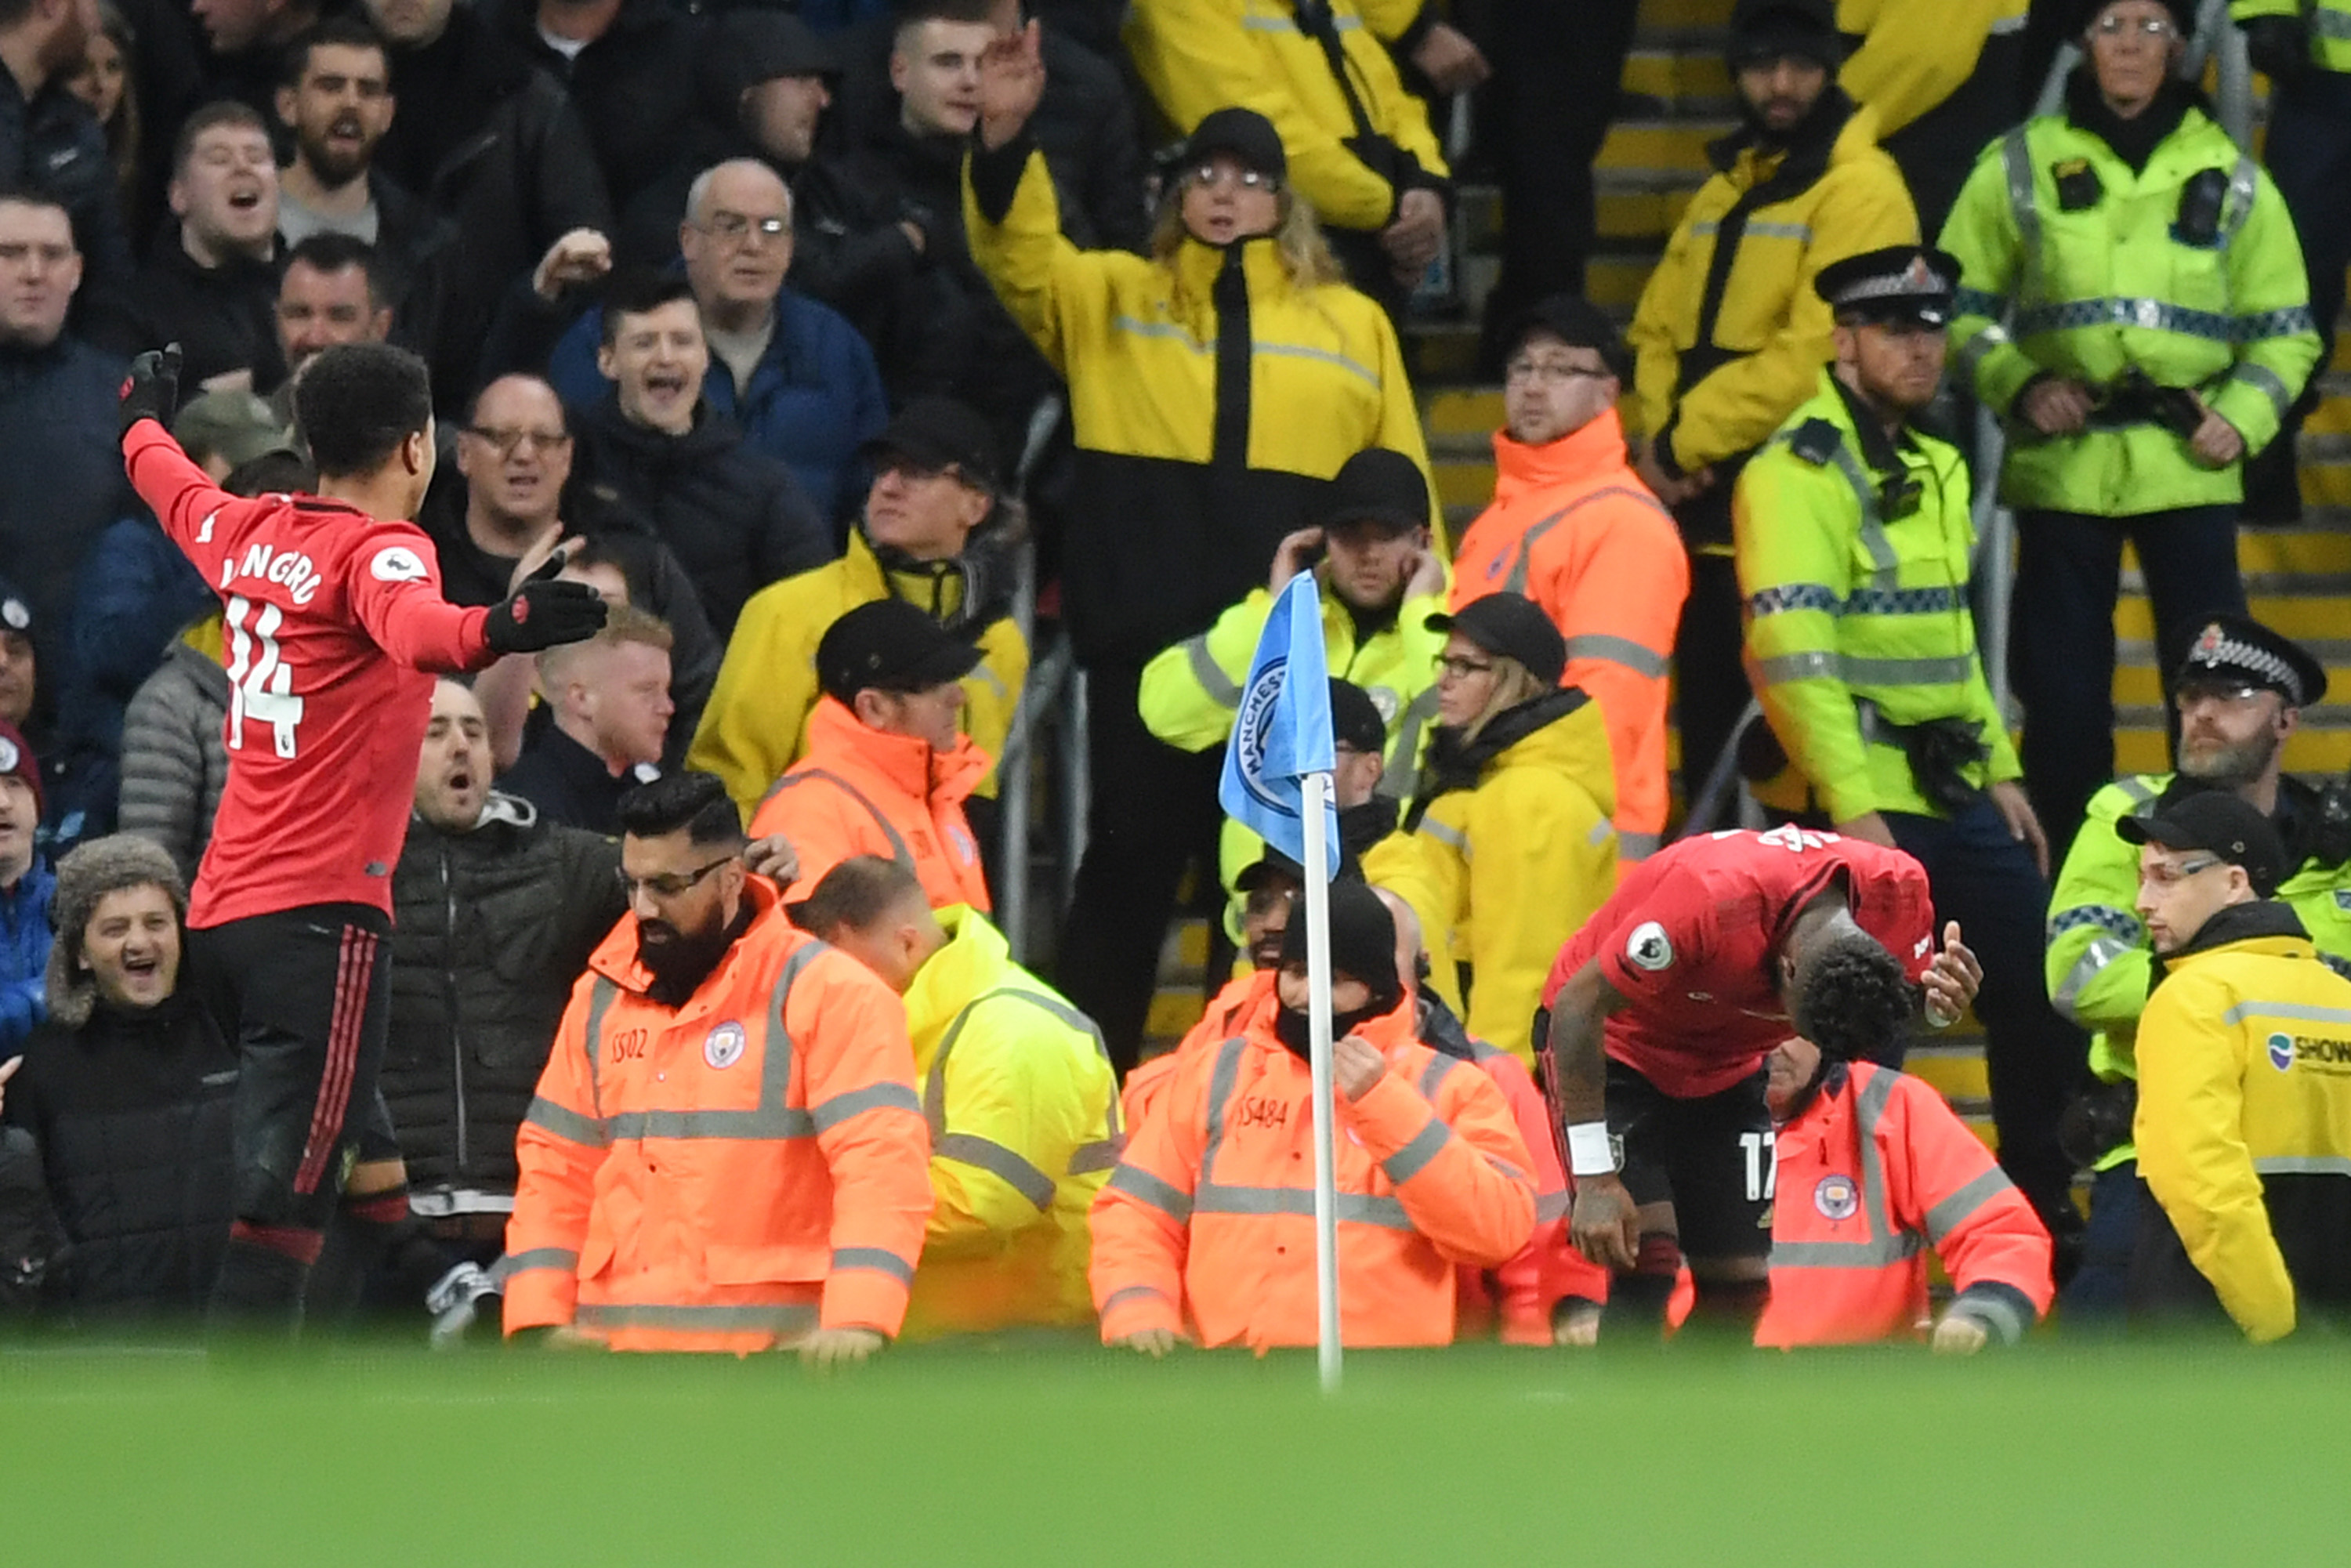 Racist incident mars Manchester derby as United stuns City rivals